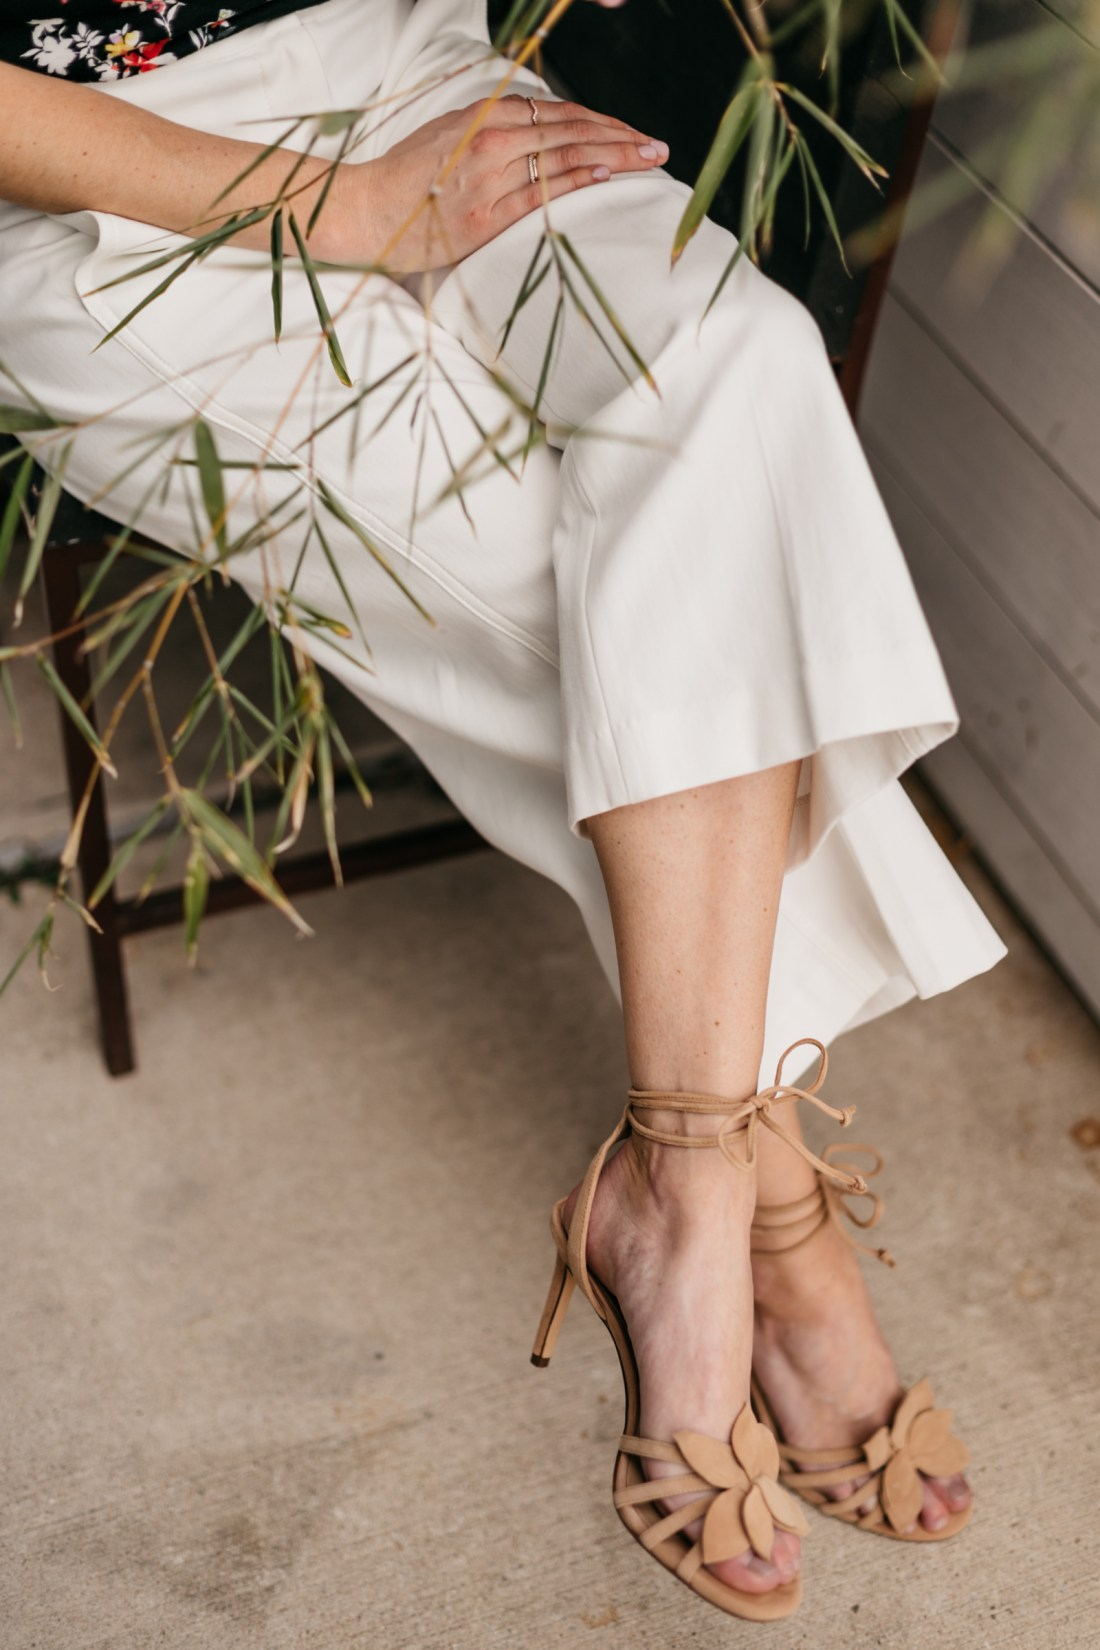 Lillie Flower Suede Heeled Sandals from Ann Taylor